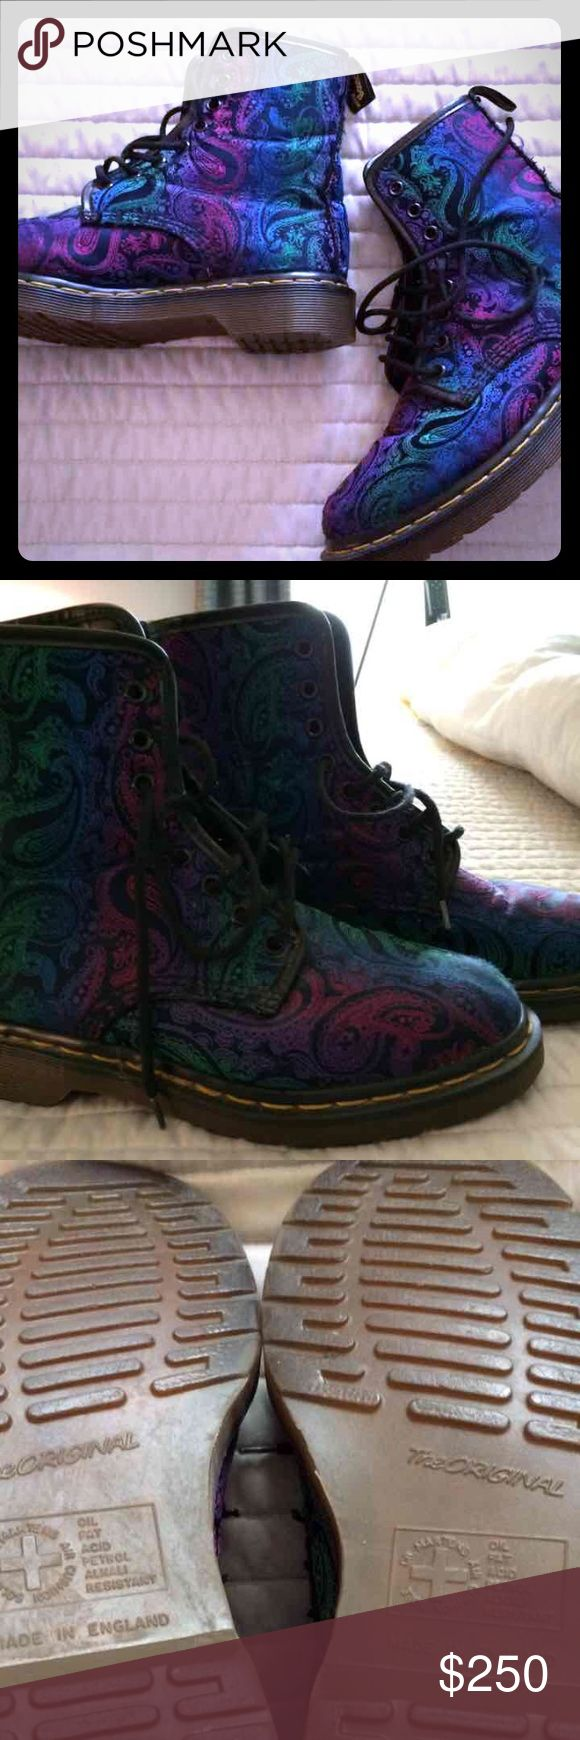 RARE VINTAGE RAINBOW PAISLEY DR.MARTENS One of my favorite pairs of boots, still not for sure I want to sell. I bought them brand new in the 90's they are true vintage! My daughter says let them go! No flaws! You won't find another pair like these!! They are blue, green, purple, pink, & black. Dr. Martens Shoes